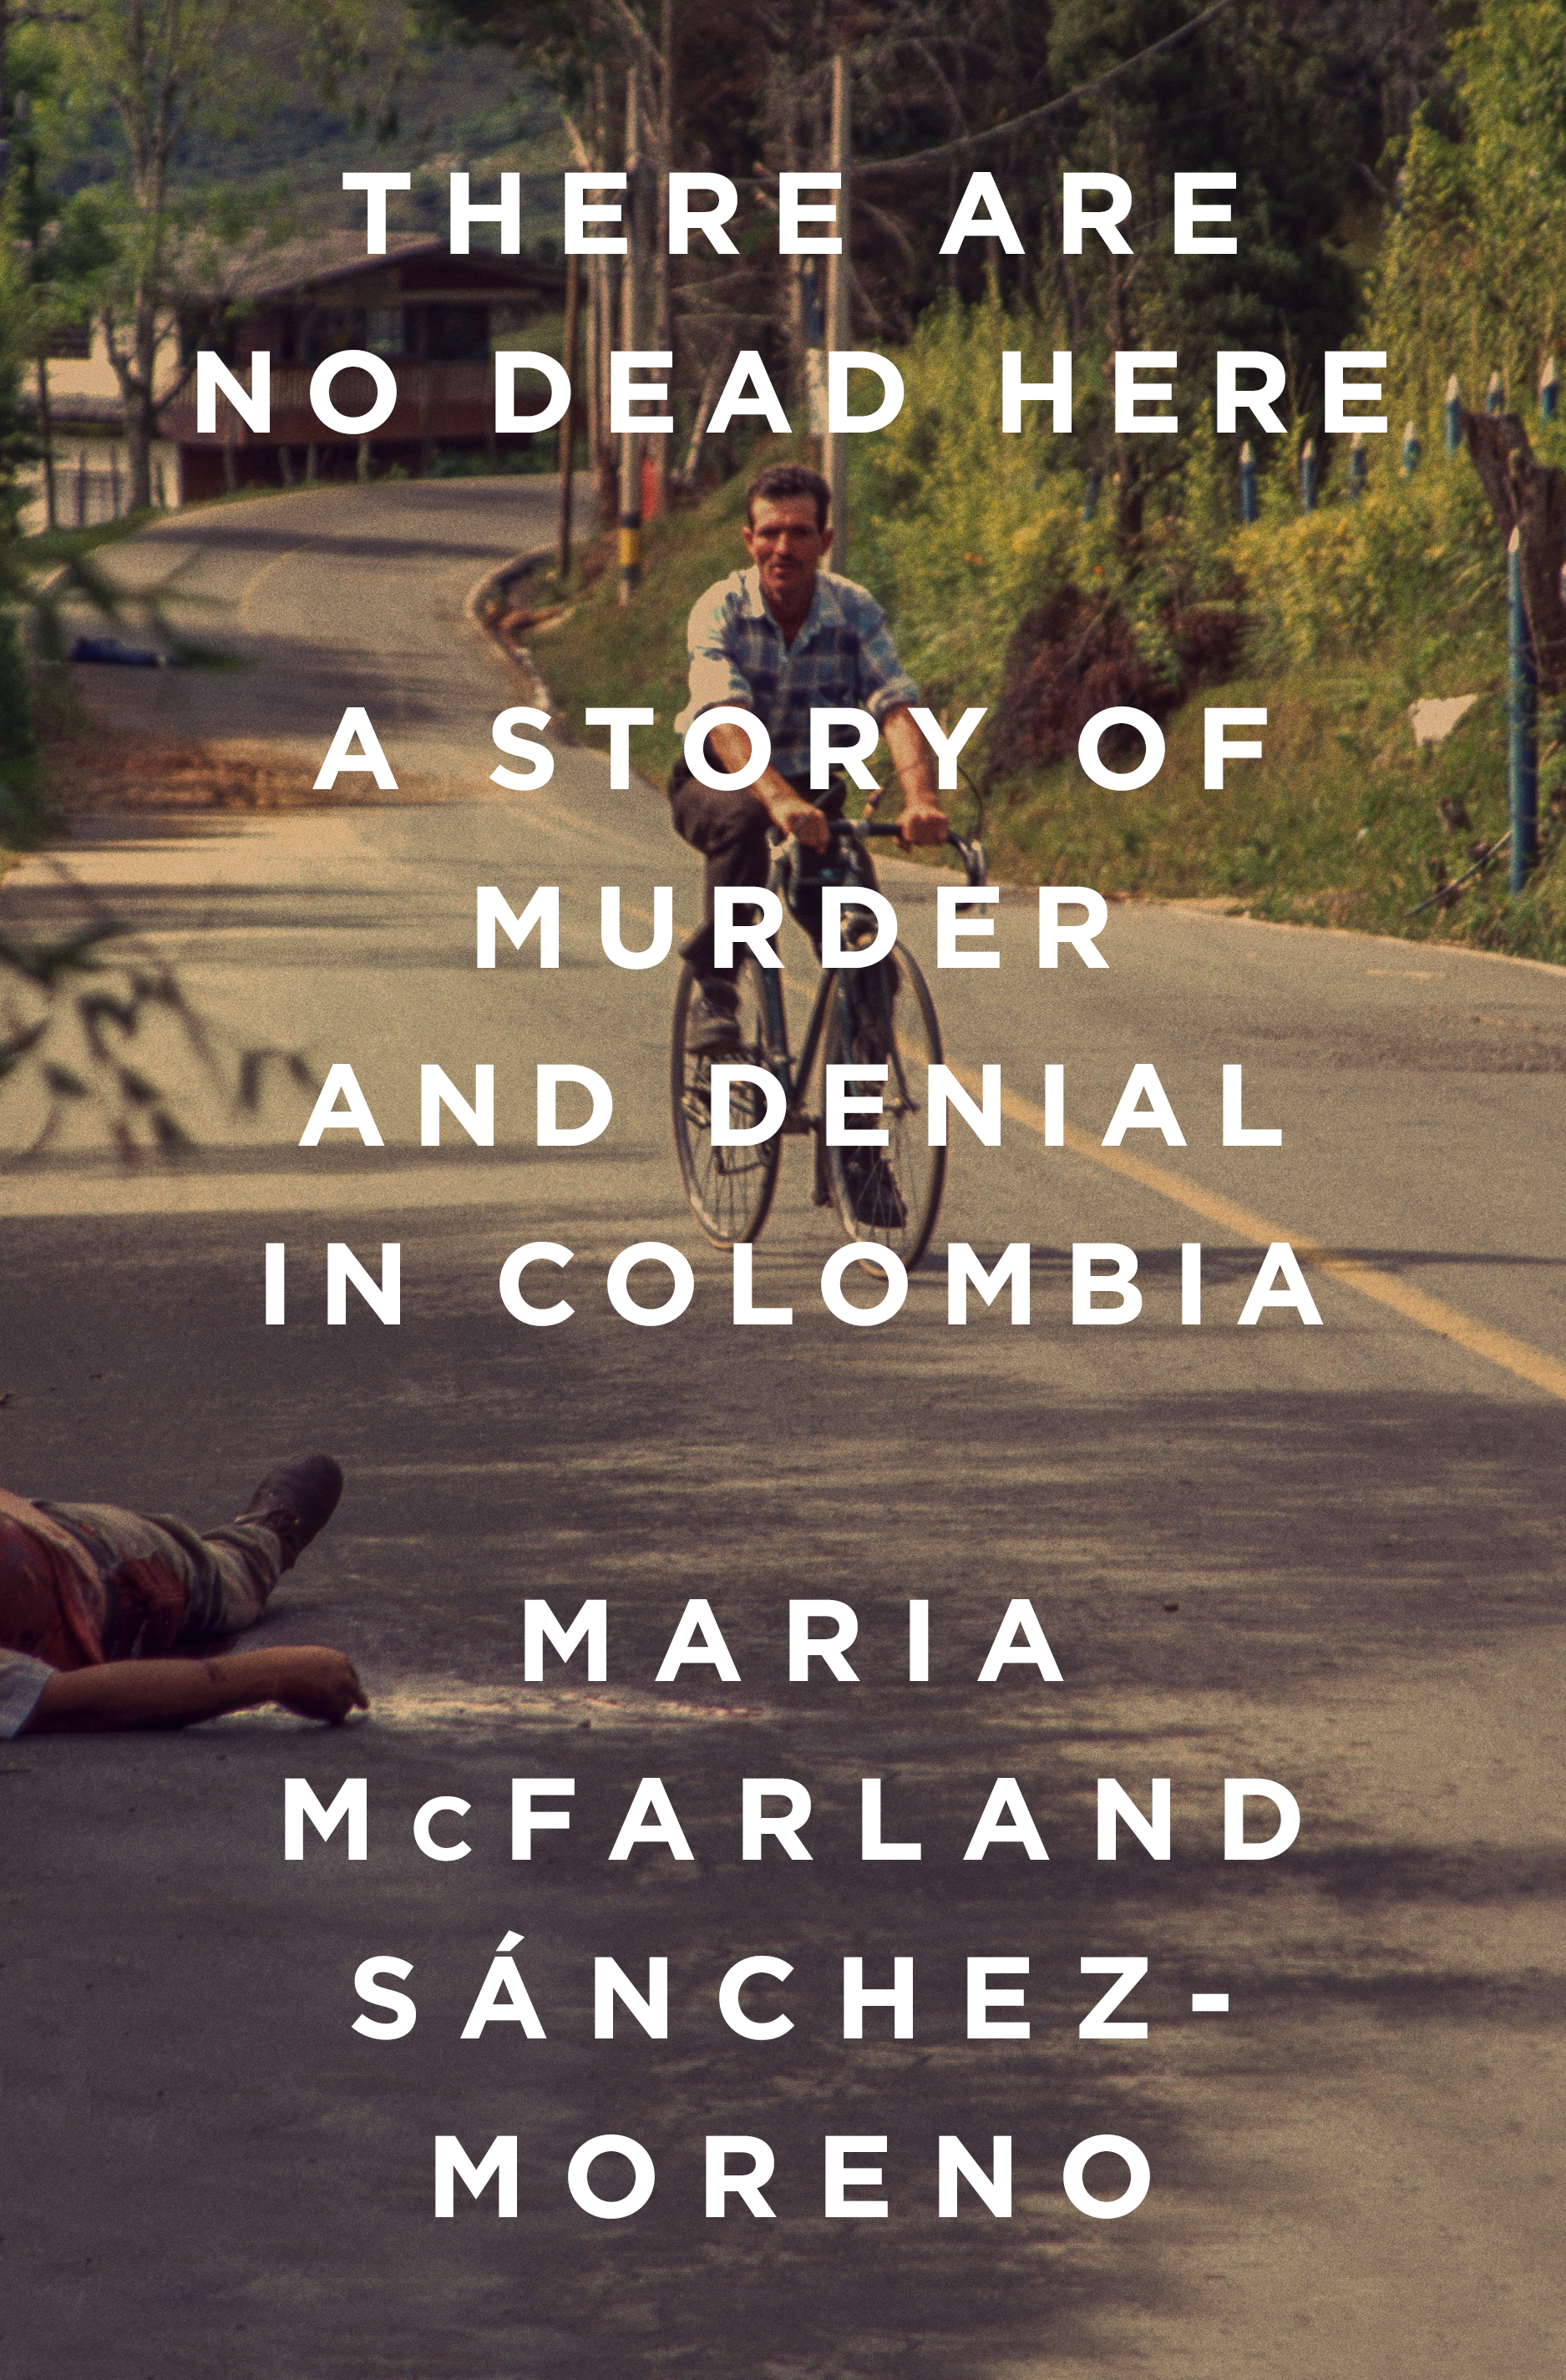 Book Launch: There Are No Dead Here: A Story of Murder and Denial in Colombia by Maria McFarland Sánchez-Moreno